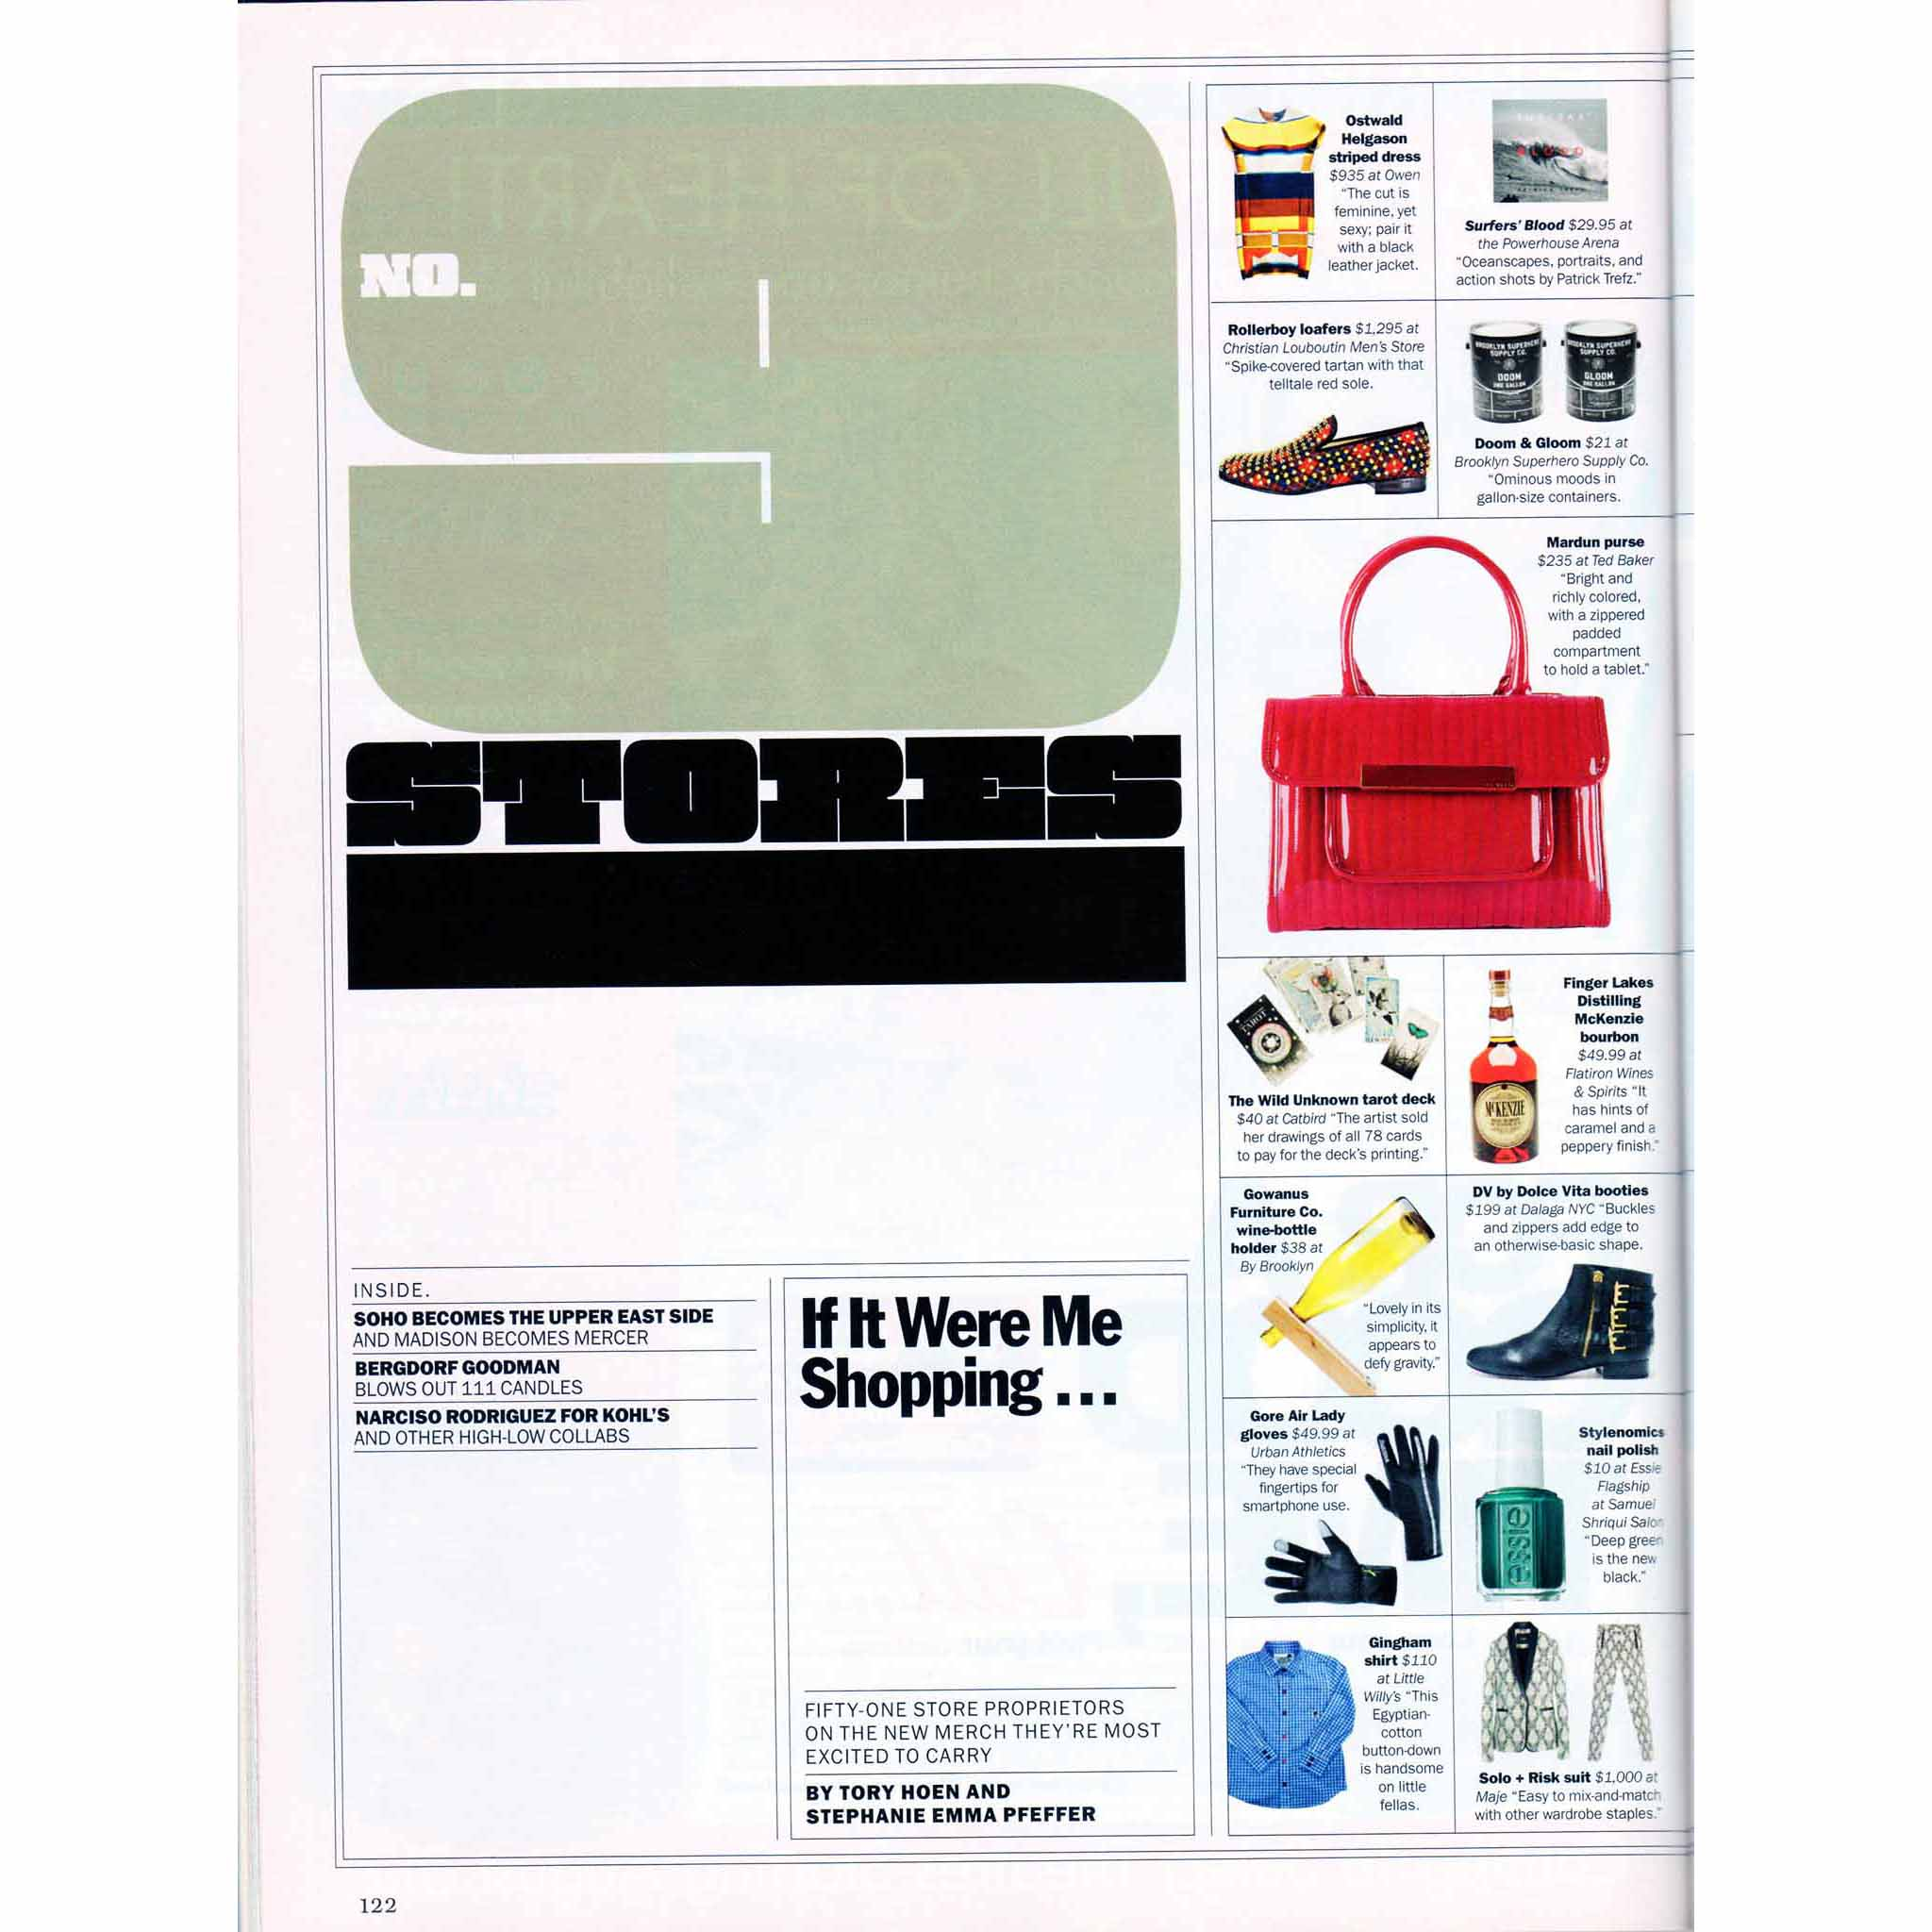 New York Magazine, Fall Preview 2012: If It Were Me Shopping, August 27 – September 3, 2012, pages 122-23.